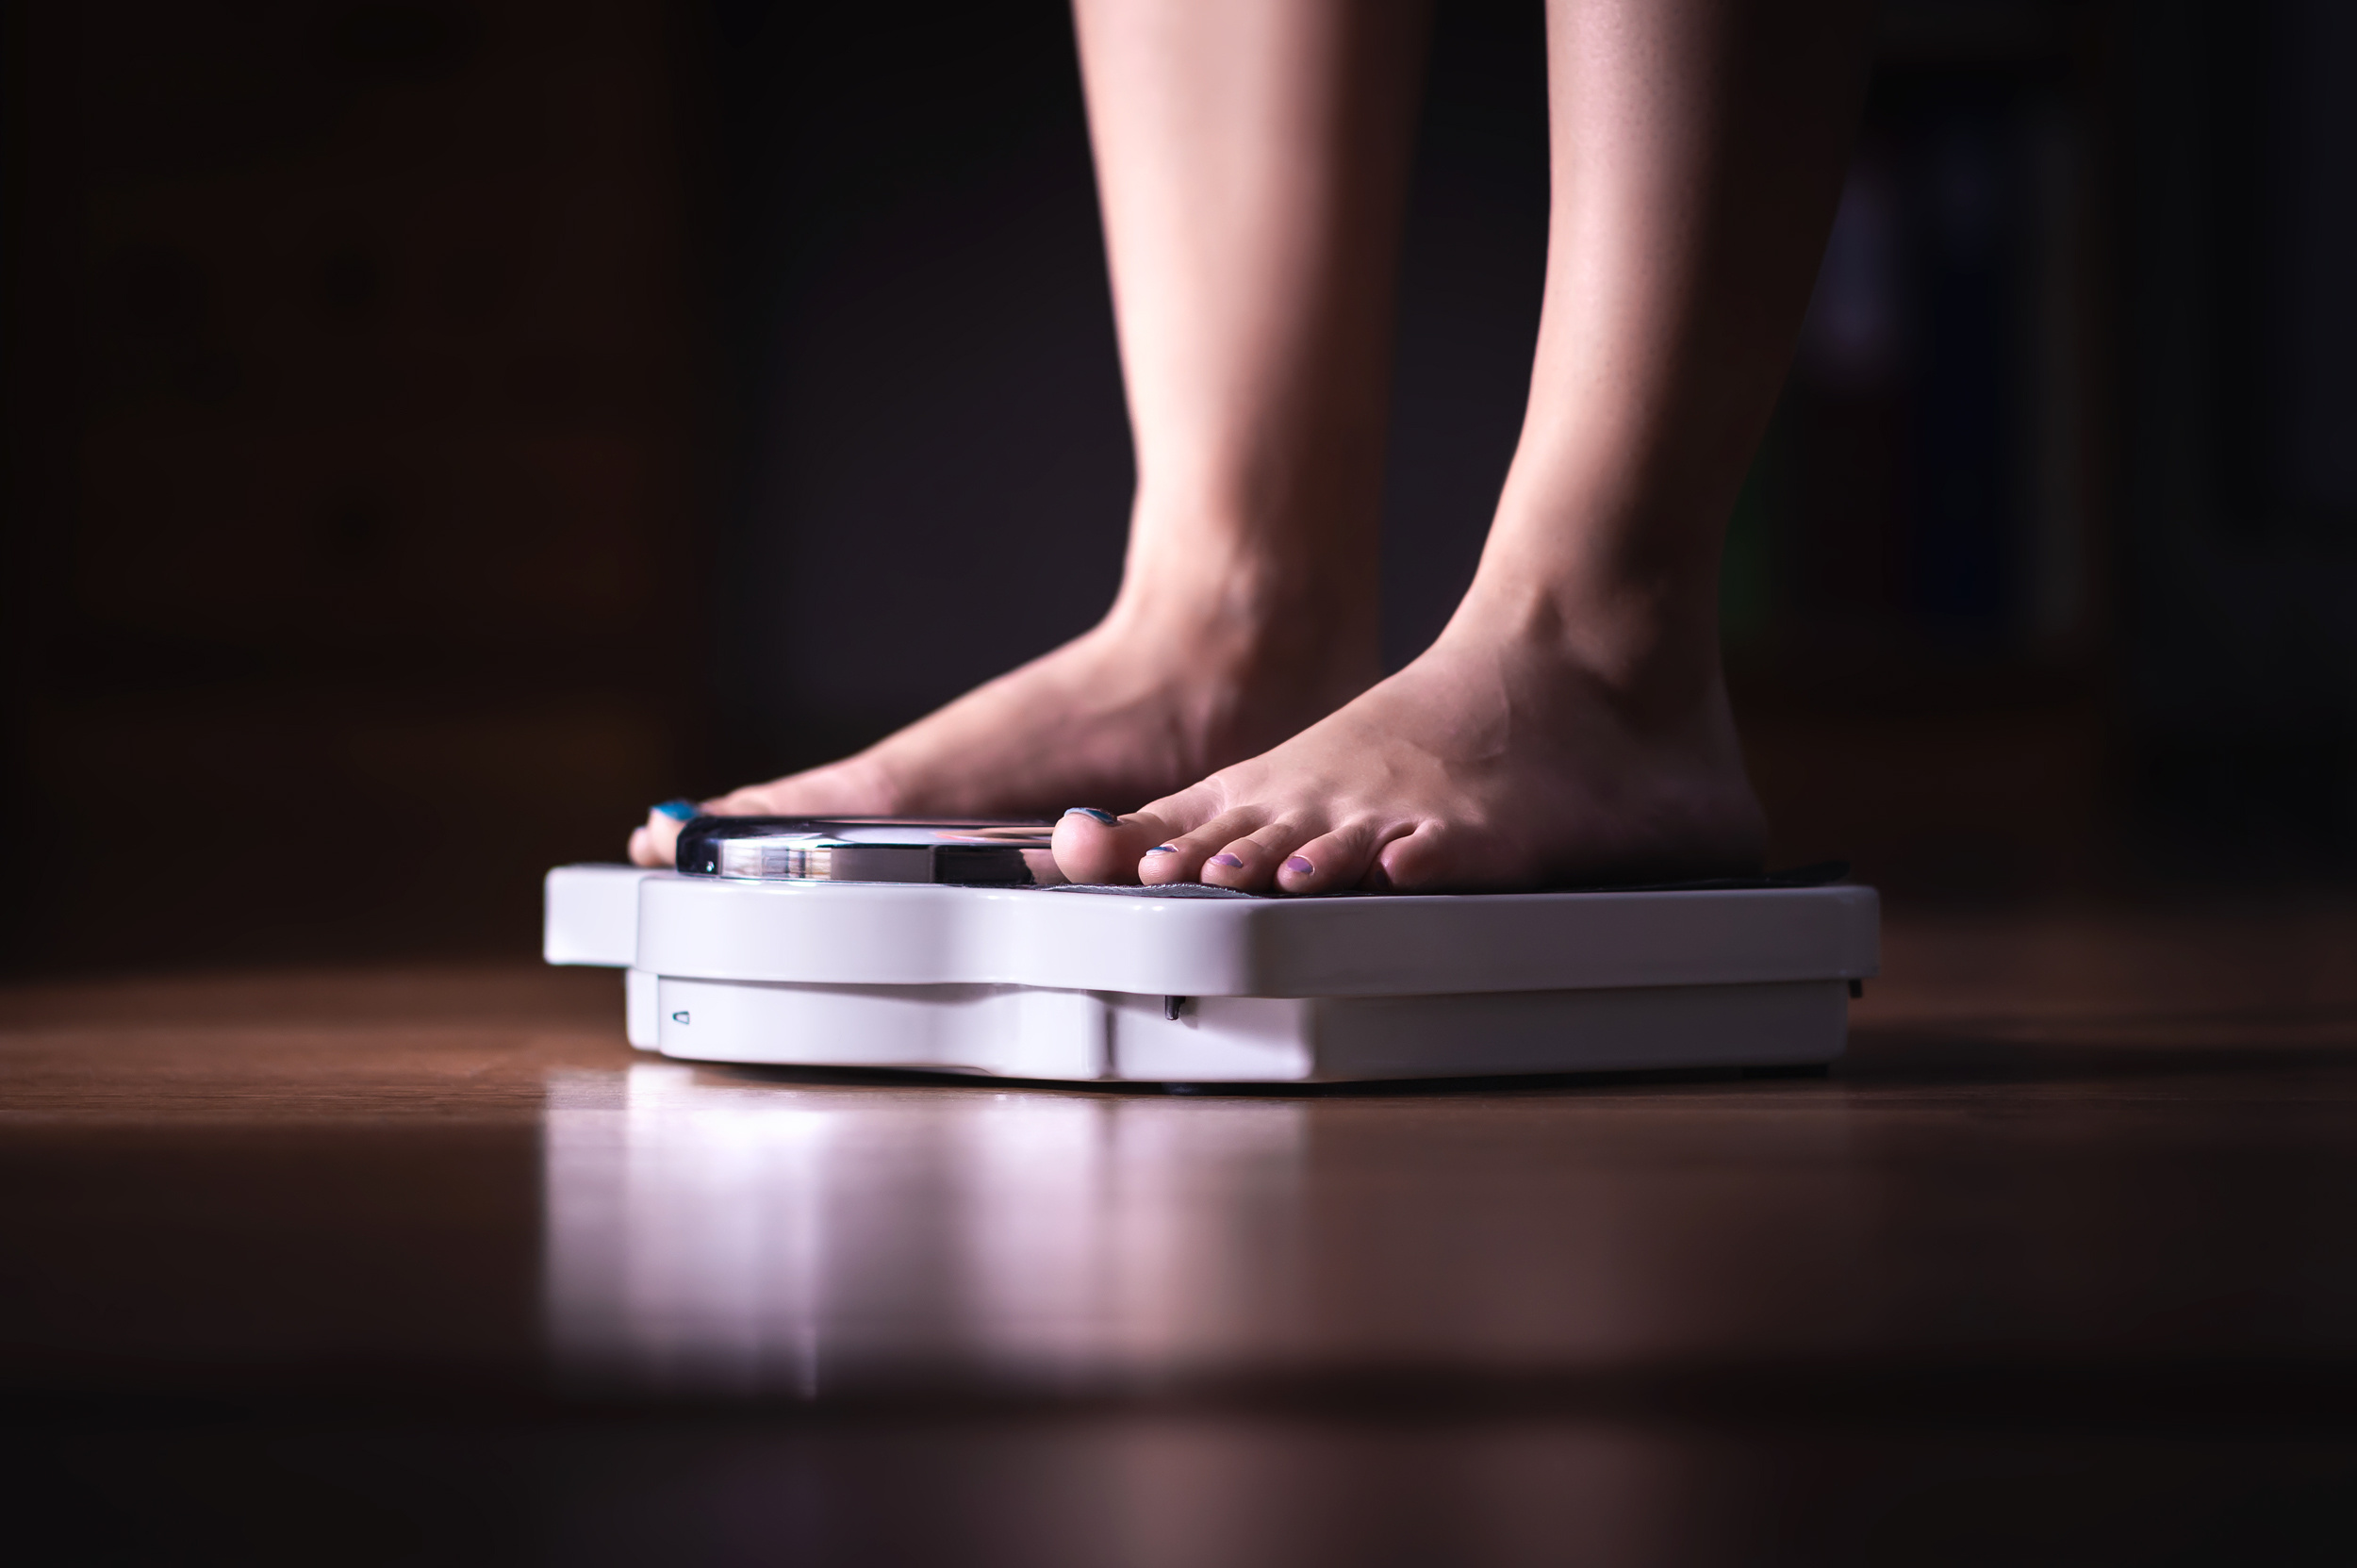 Obesity is linked to cancer, and obesity and immune system function that is compromised is linked to a number of other health problems